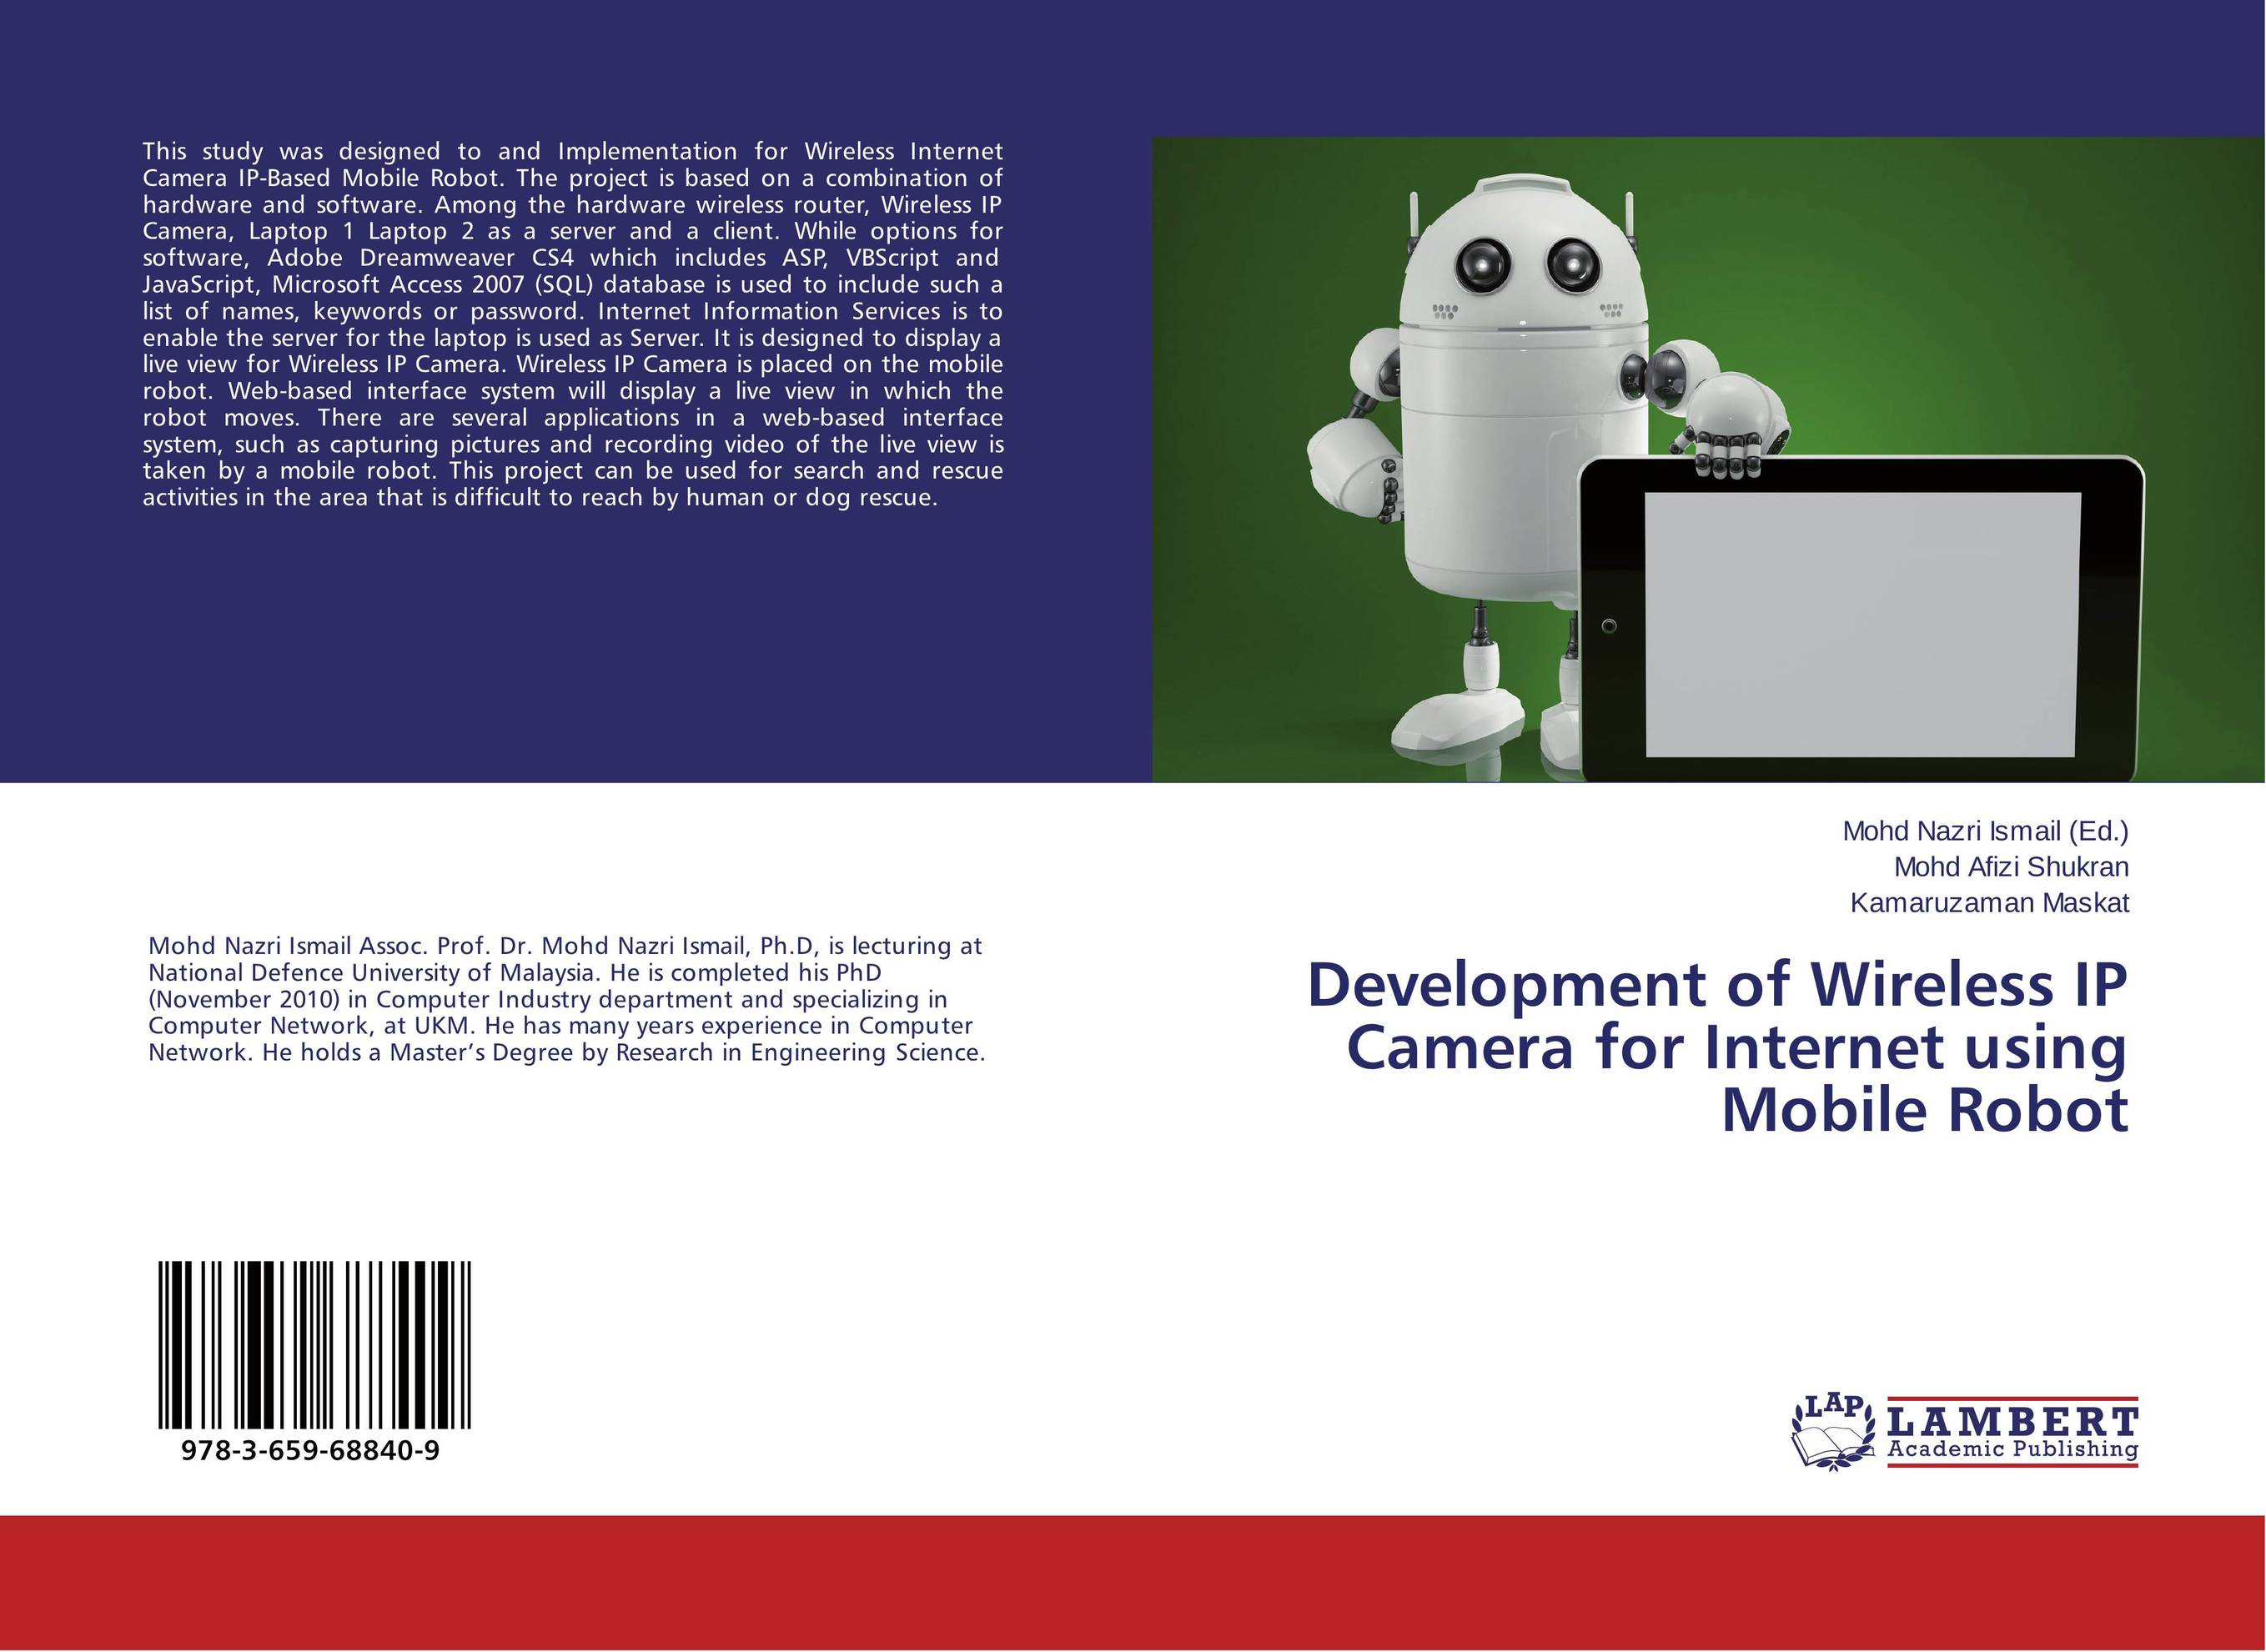 Development of Wireless IP Camera for Internet using Mobile Robot mpso and mga approaches for mobile robot navigation